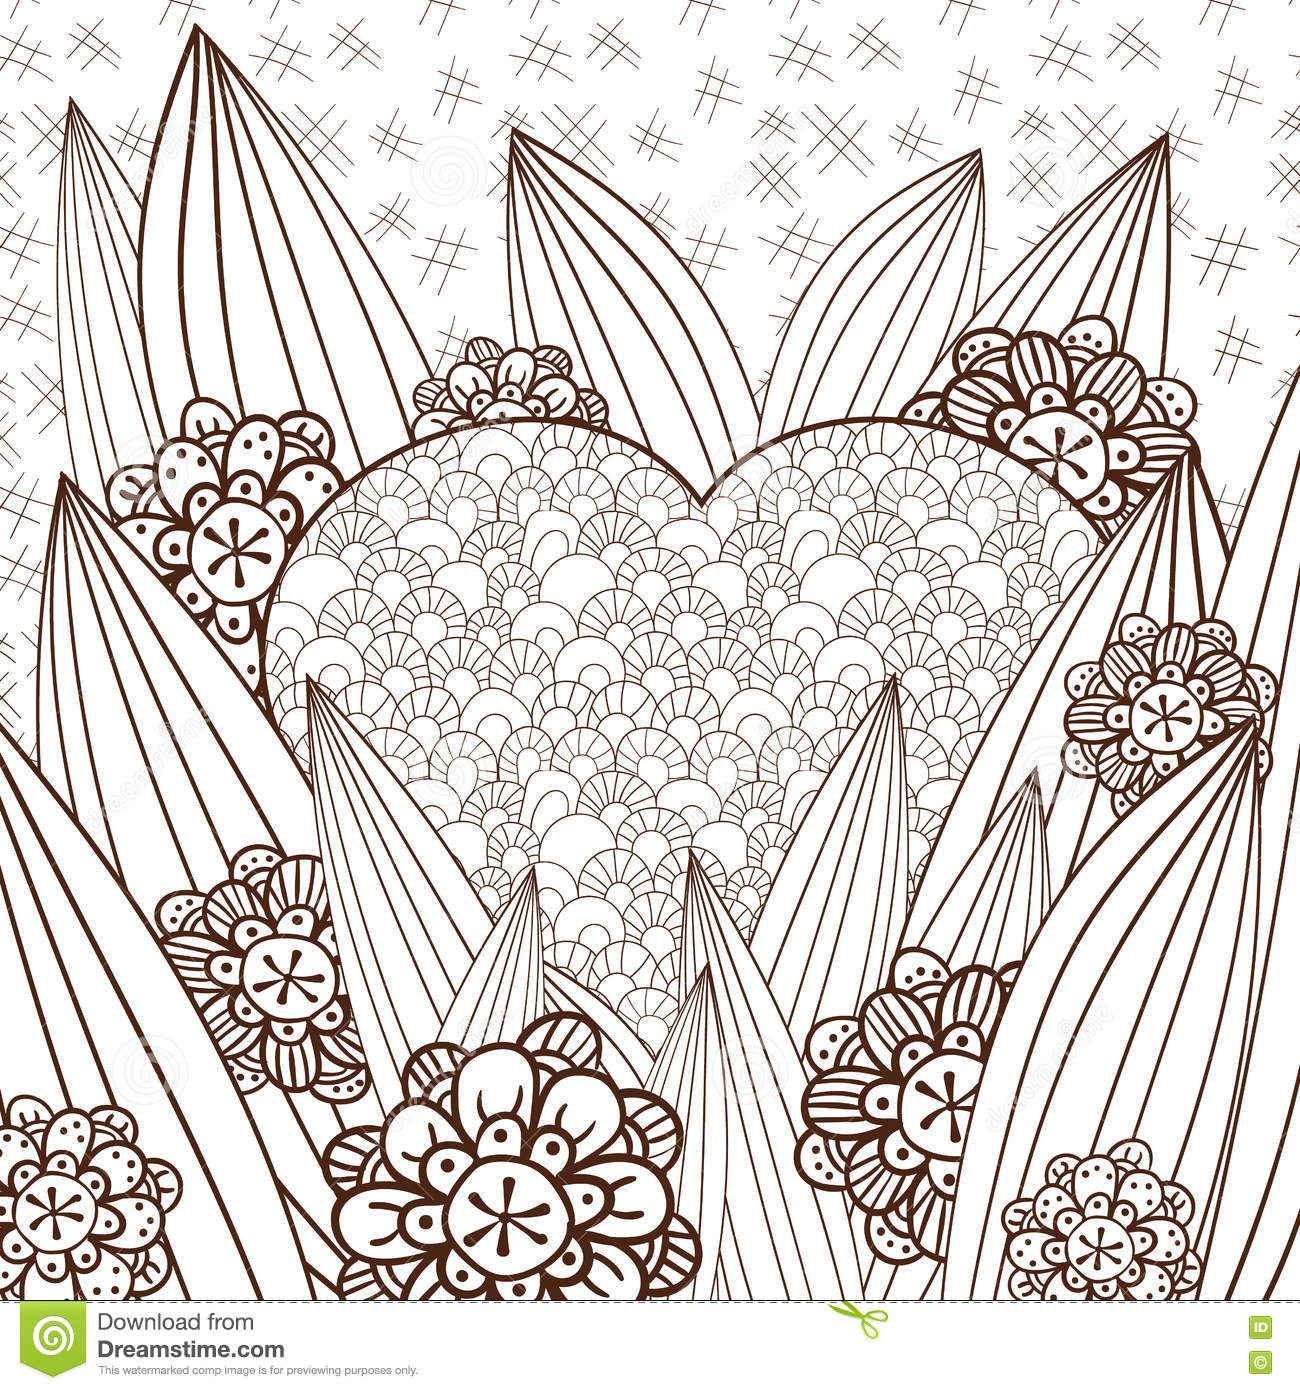 Royalty Free Vector Download Whimsical Garden Adult Coloring